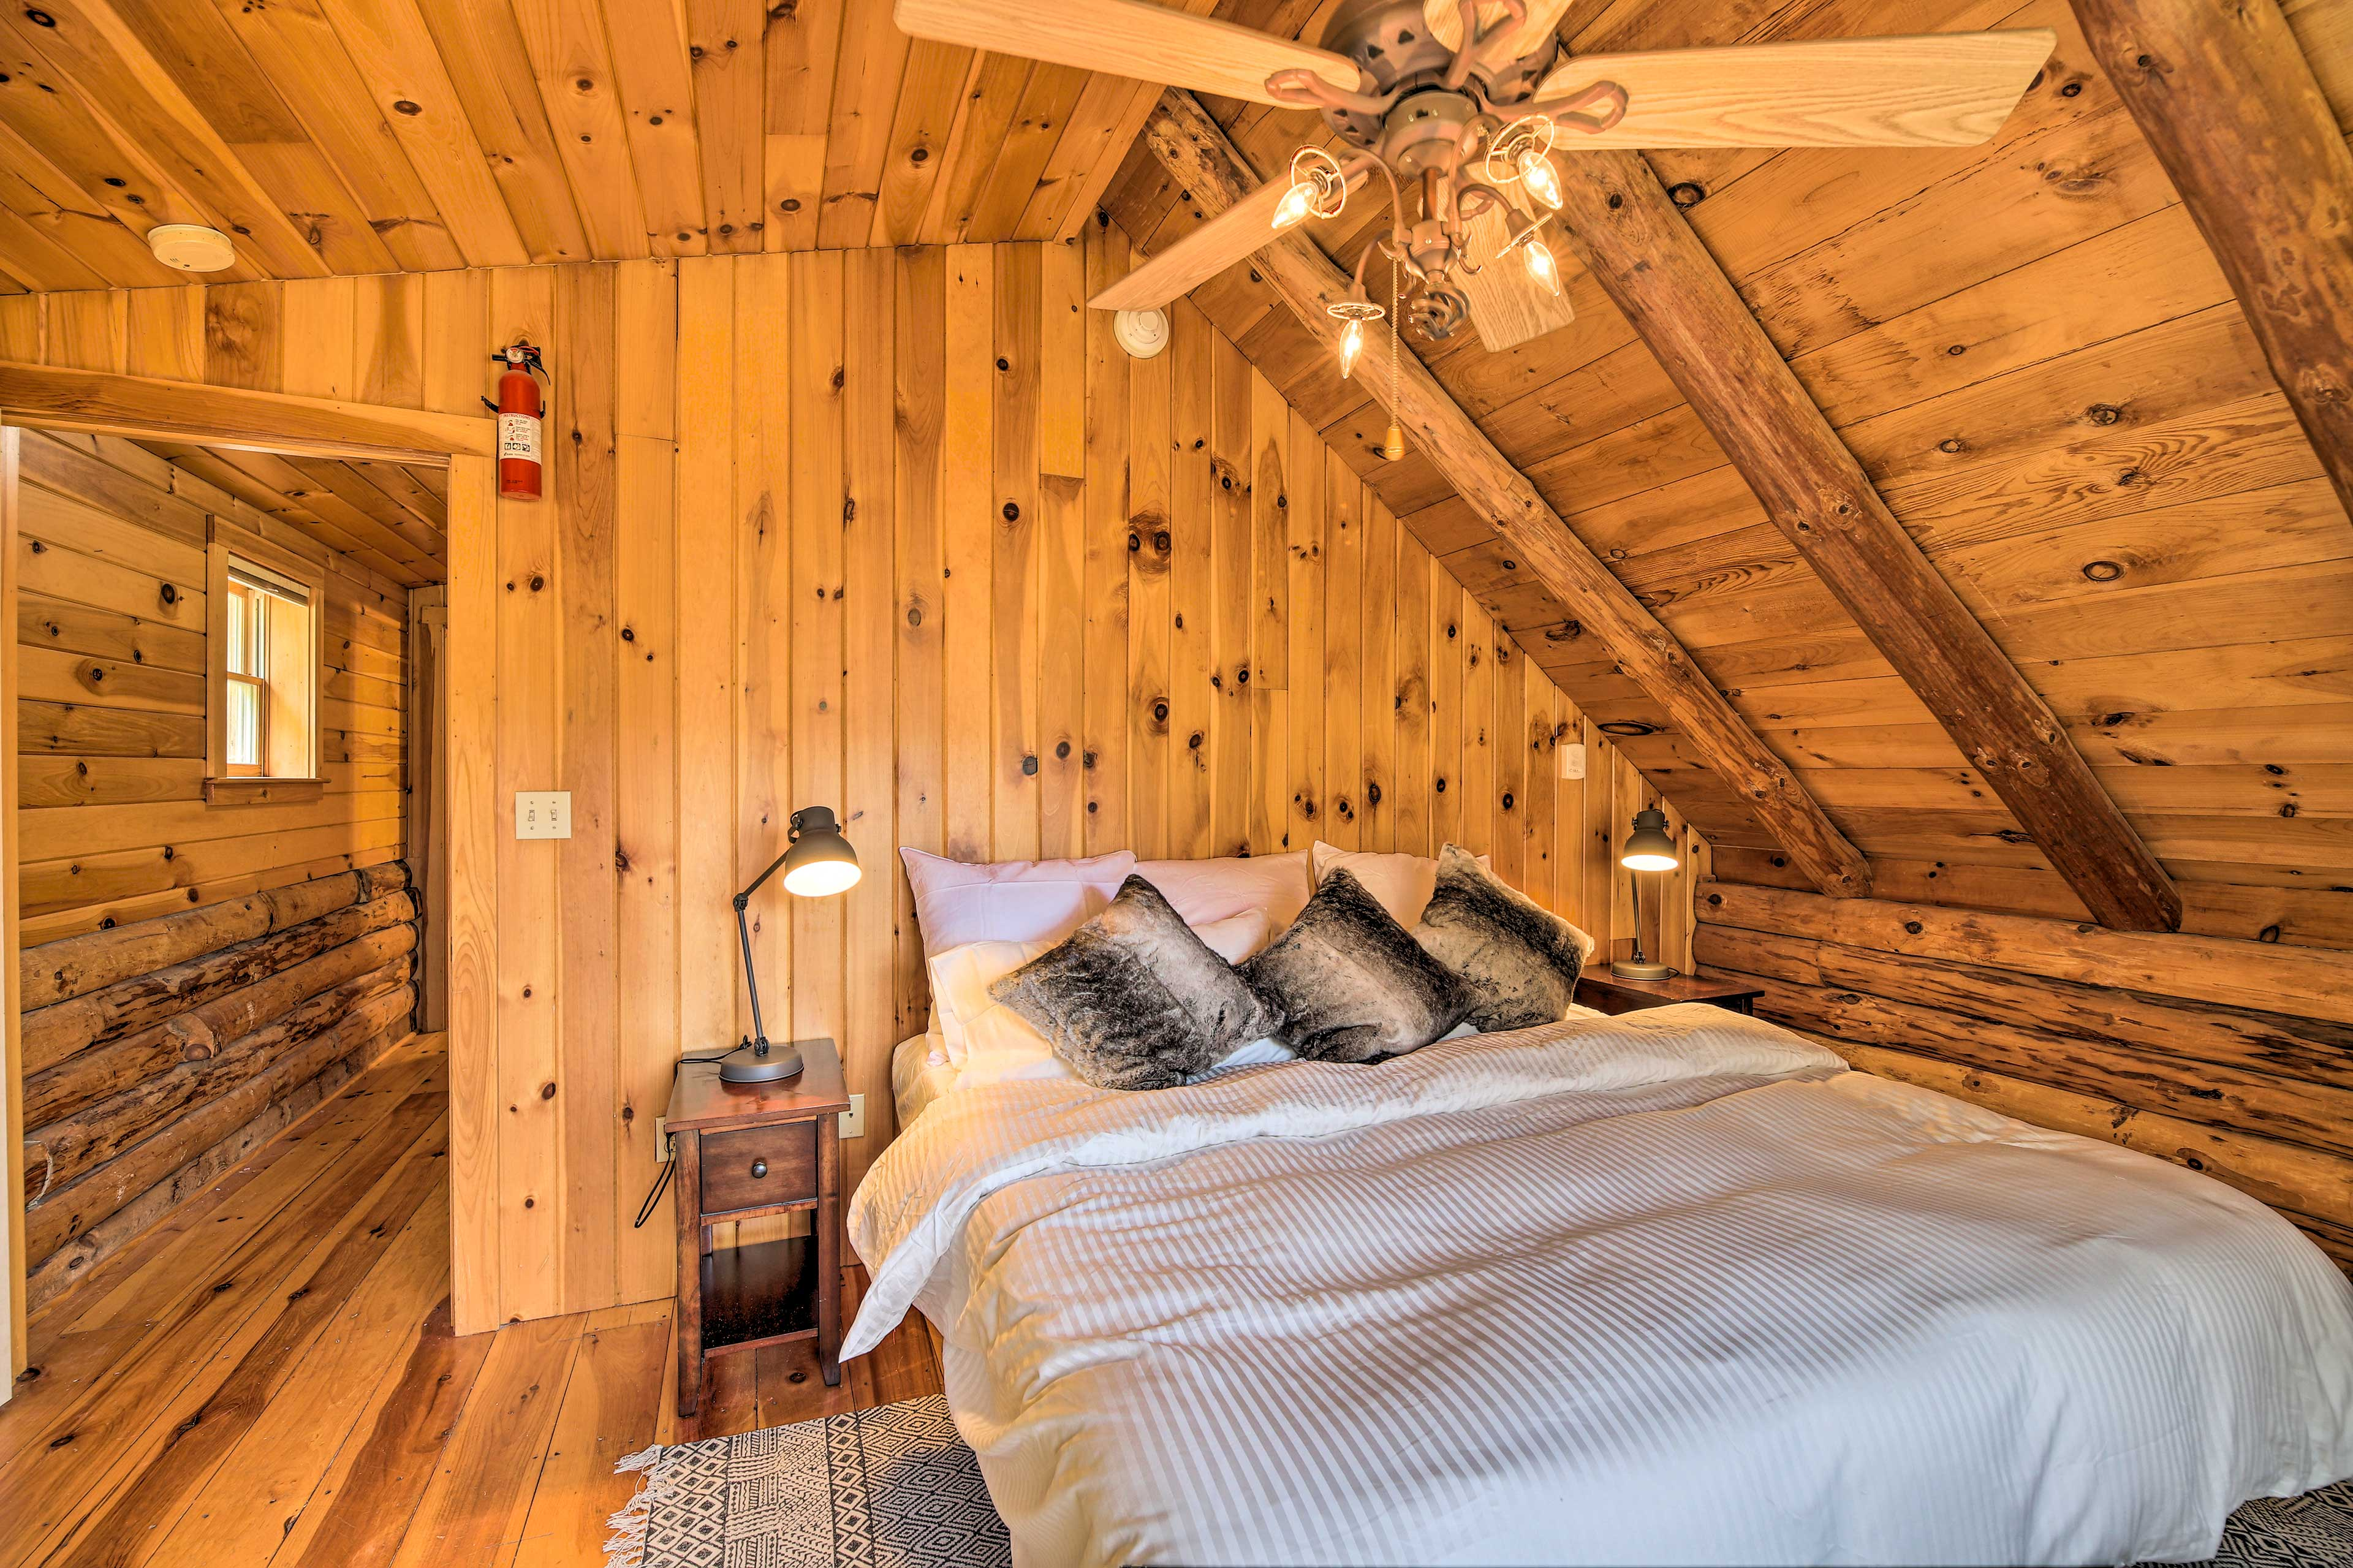 This bedroom is outfitted with a king bed as well.